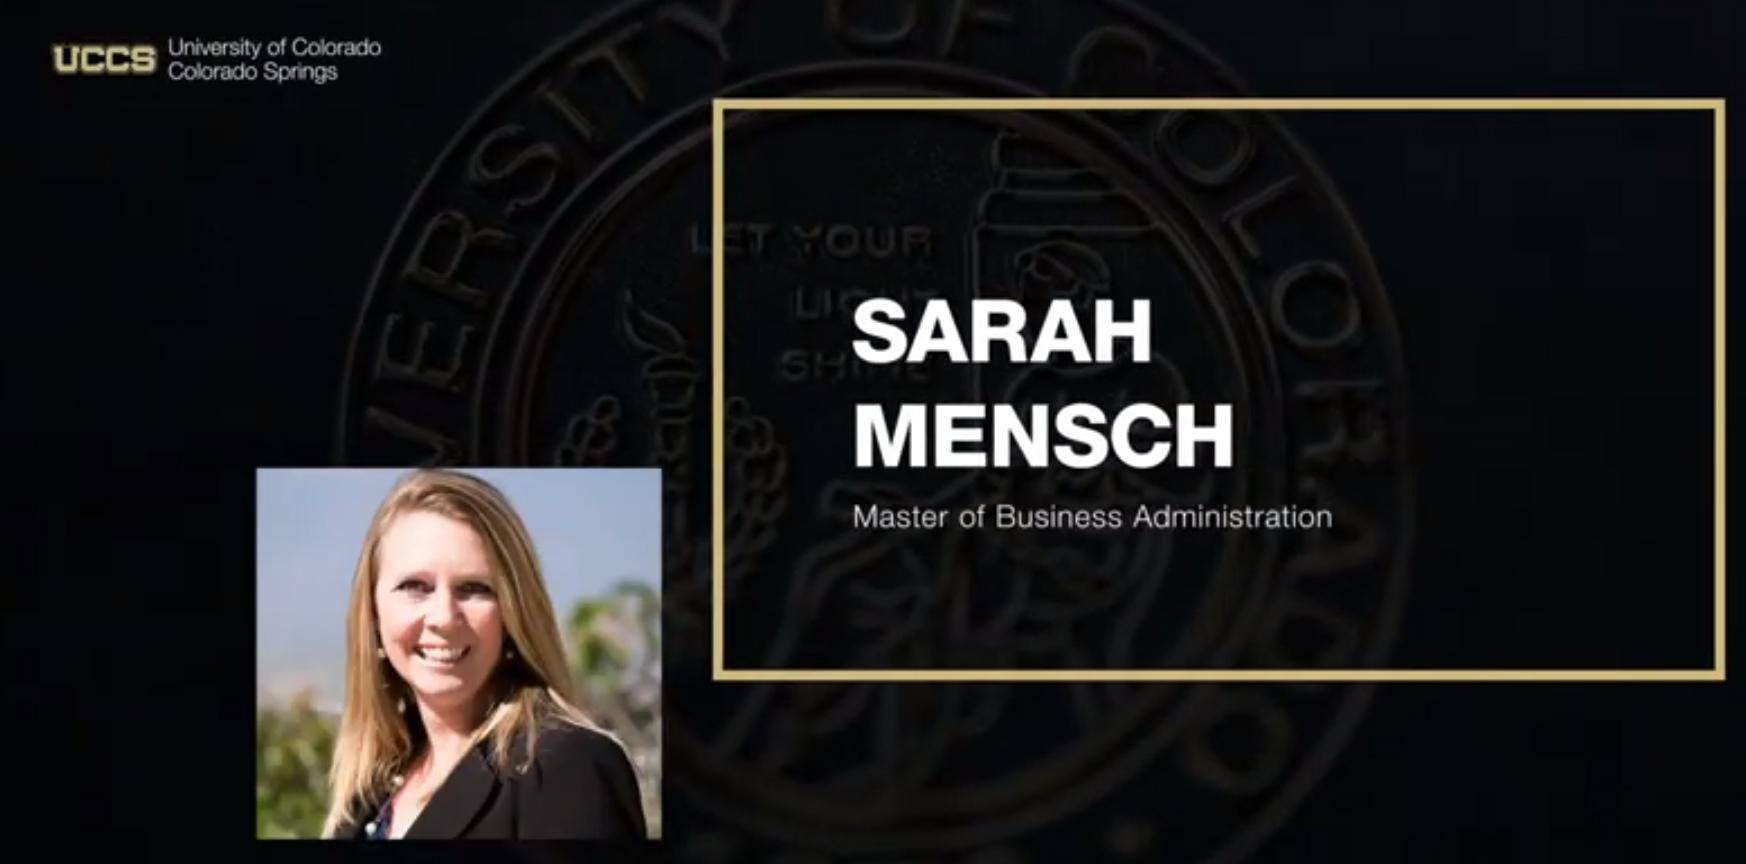 Sarah Mensch recognized for earning her MBA